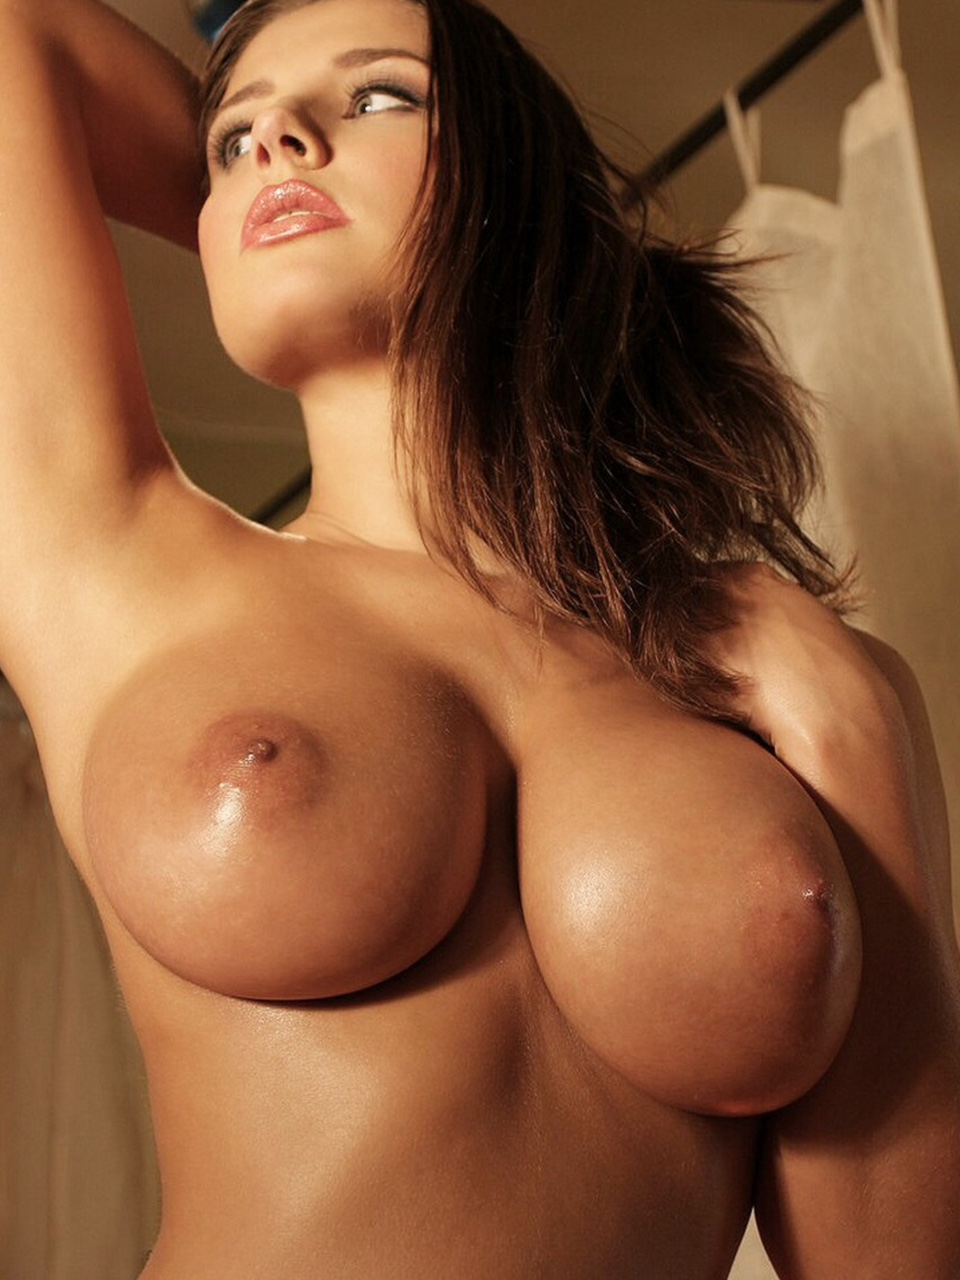 Round and big tits for